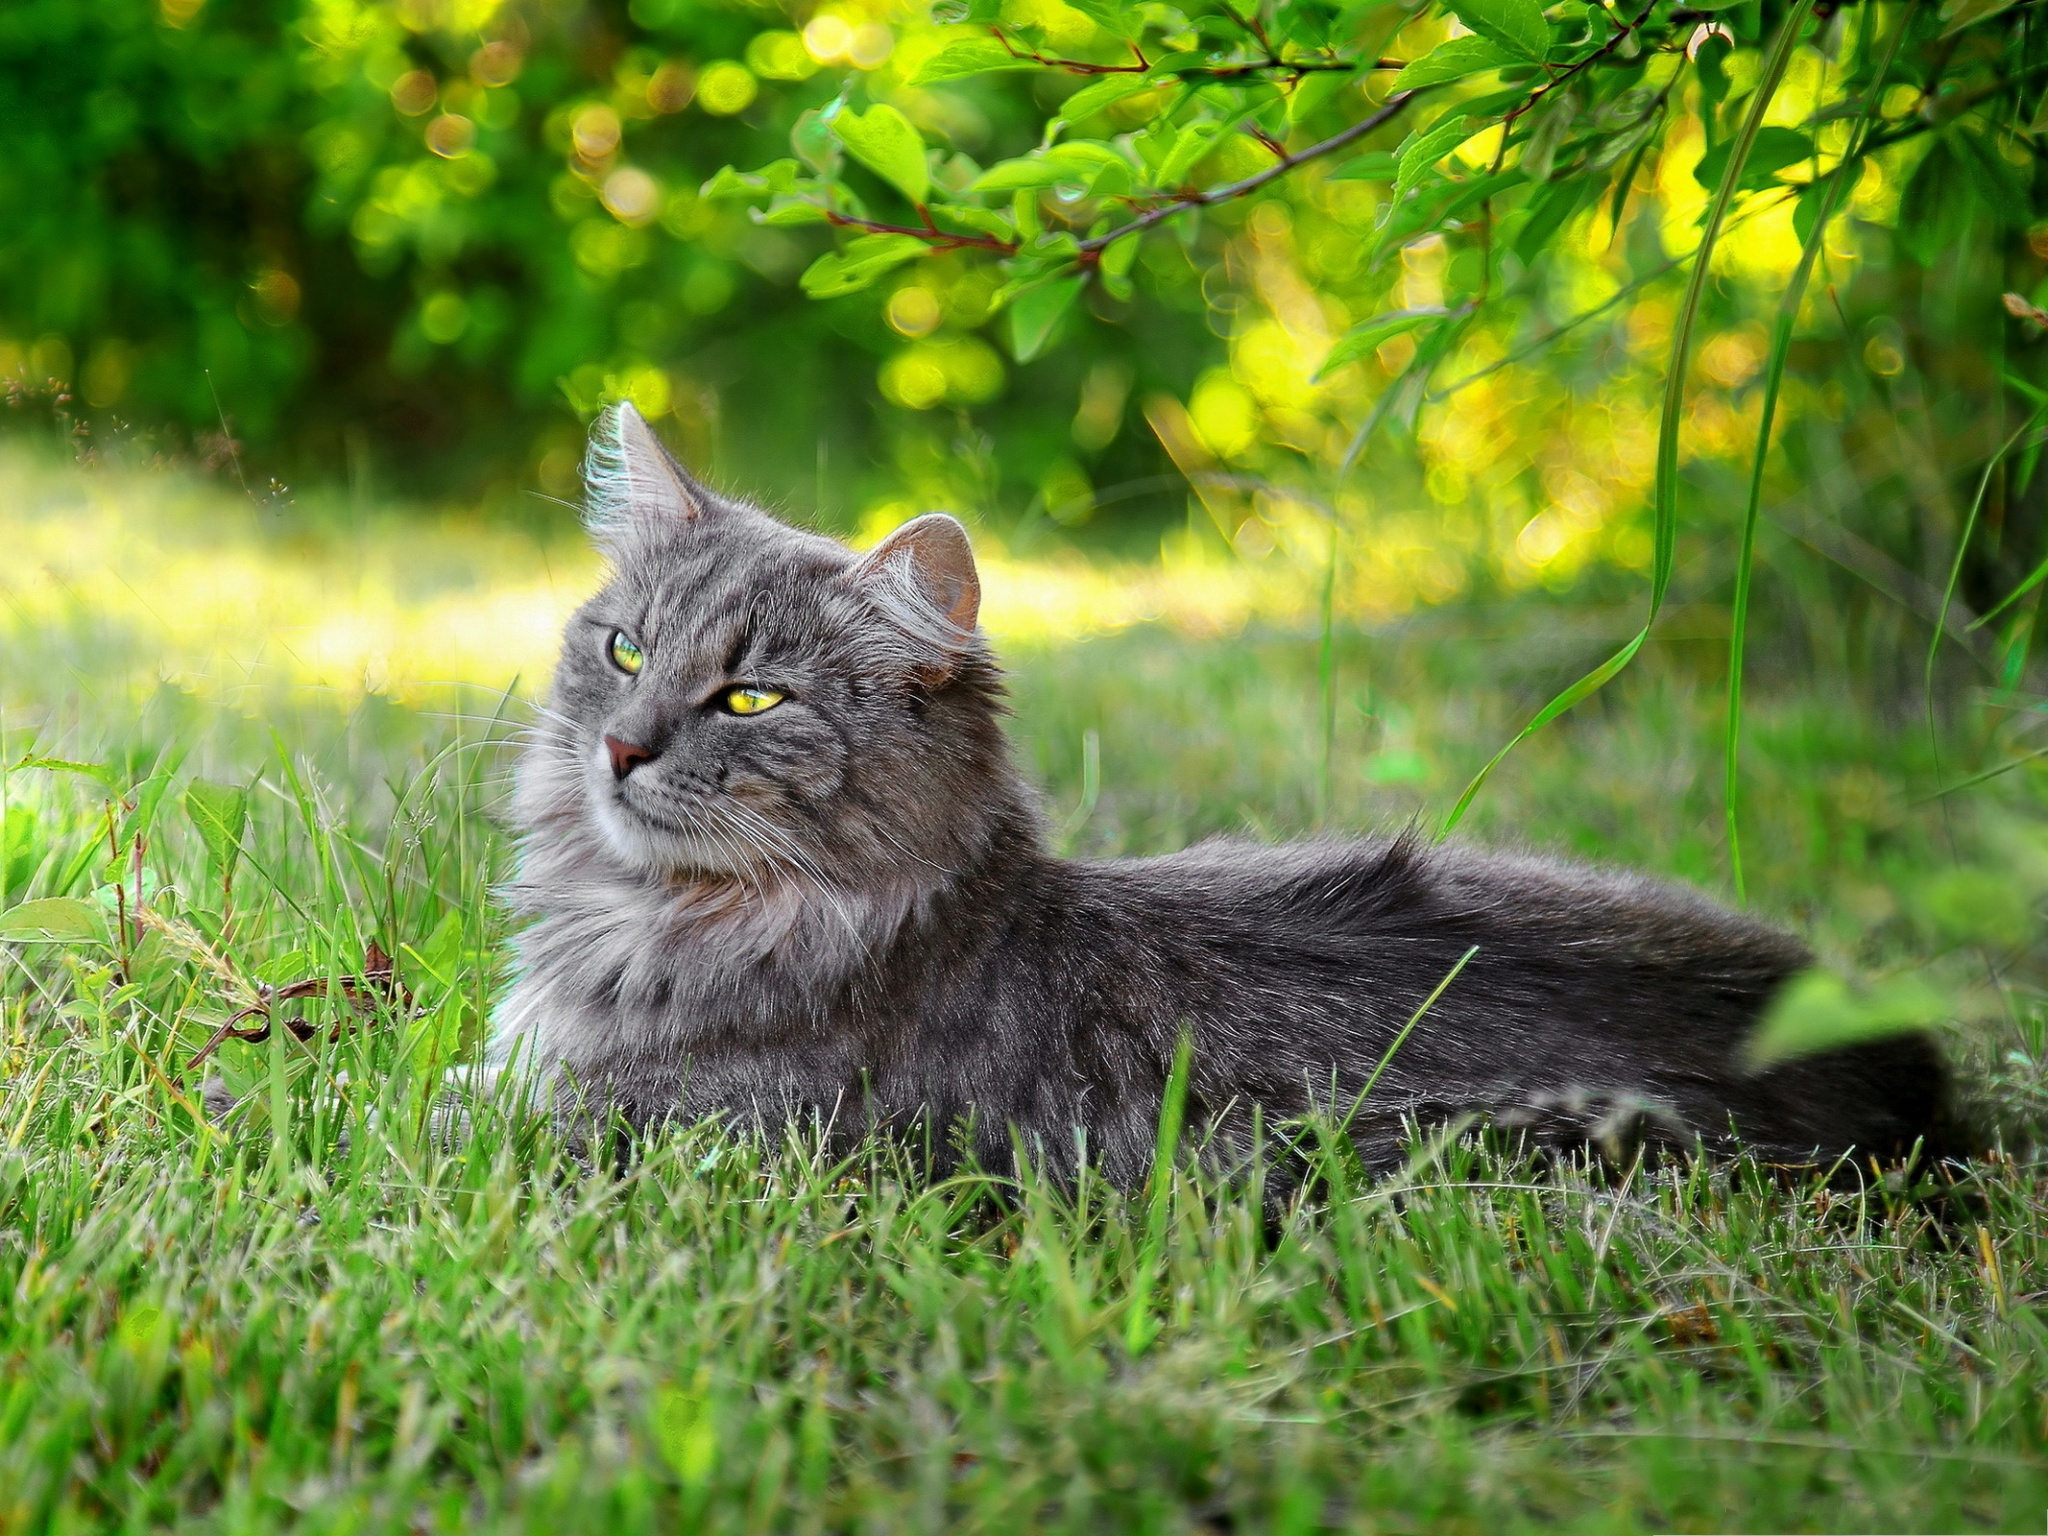 click to free download the wallpaper--Lazy Cat Image, Kitten Lying Under Green Tree, Unwilling to Move 2048X1536 free wallpaper download